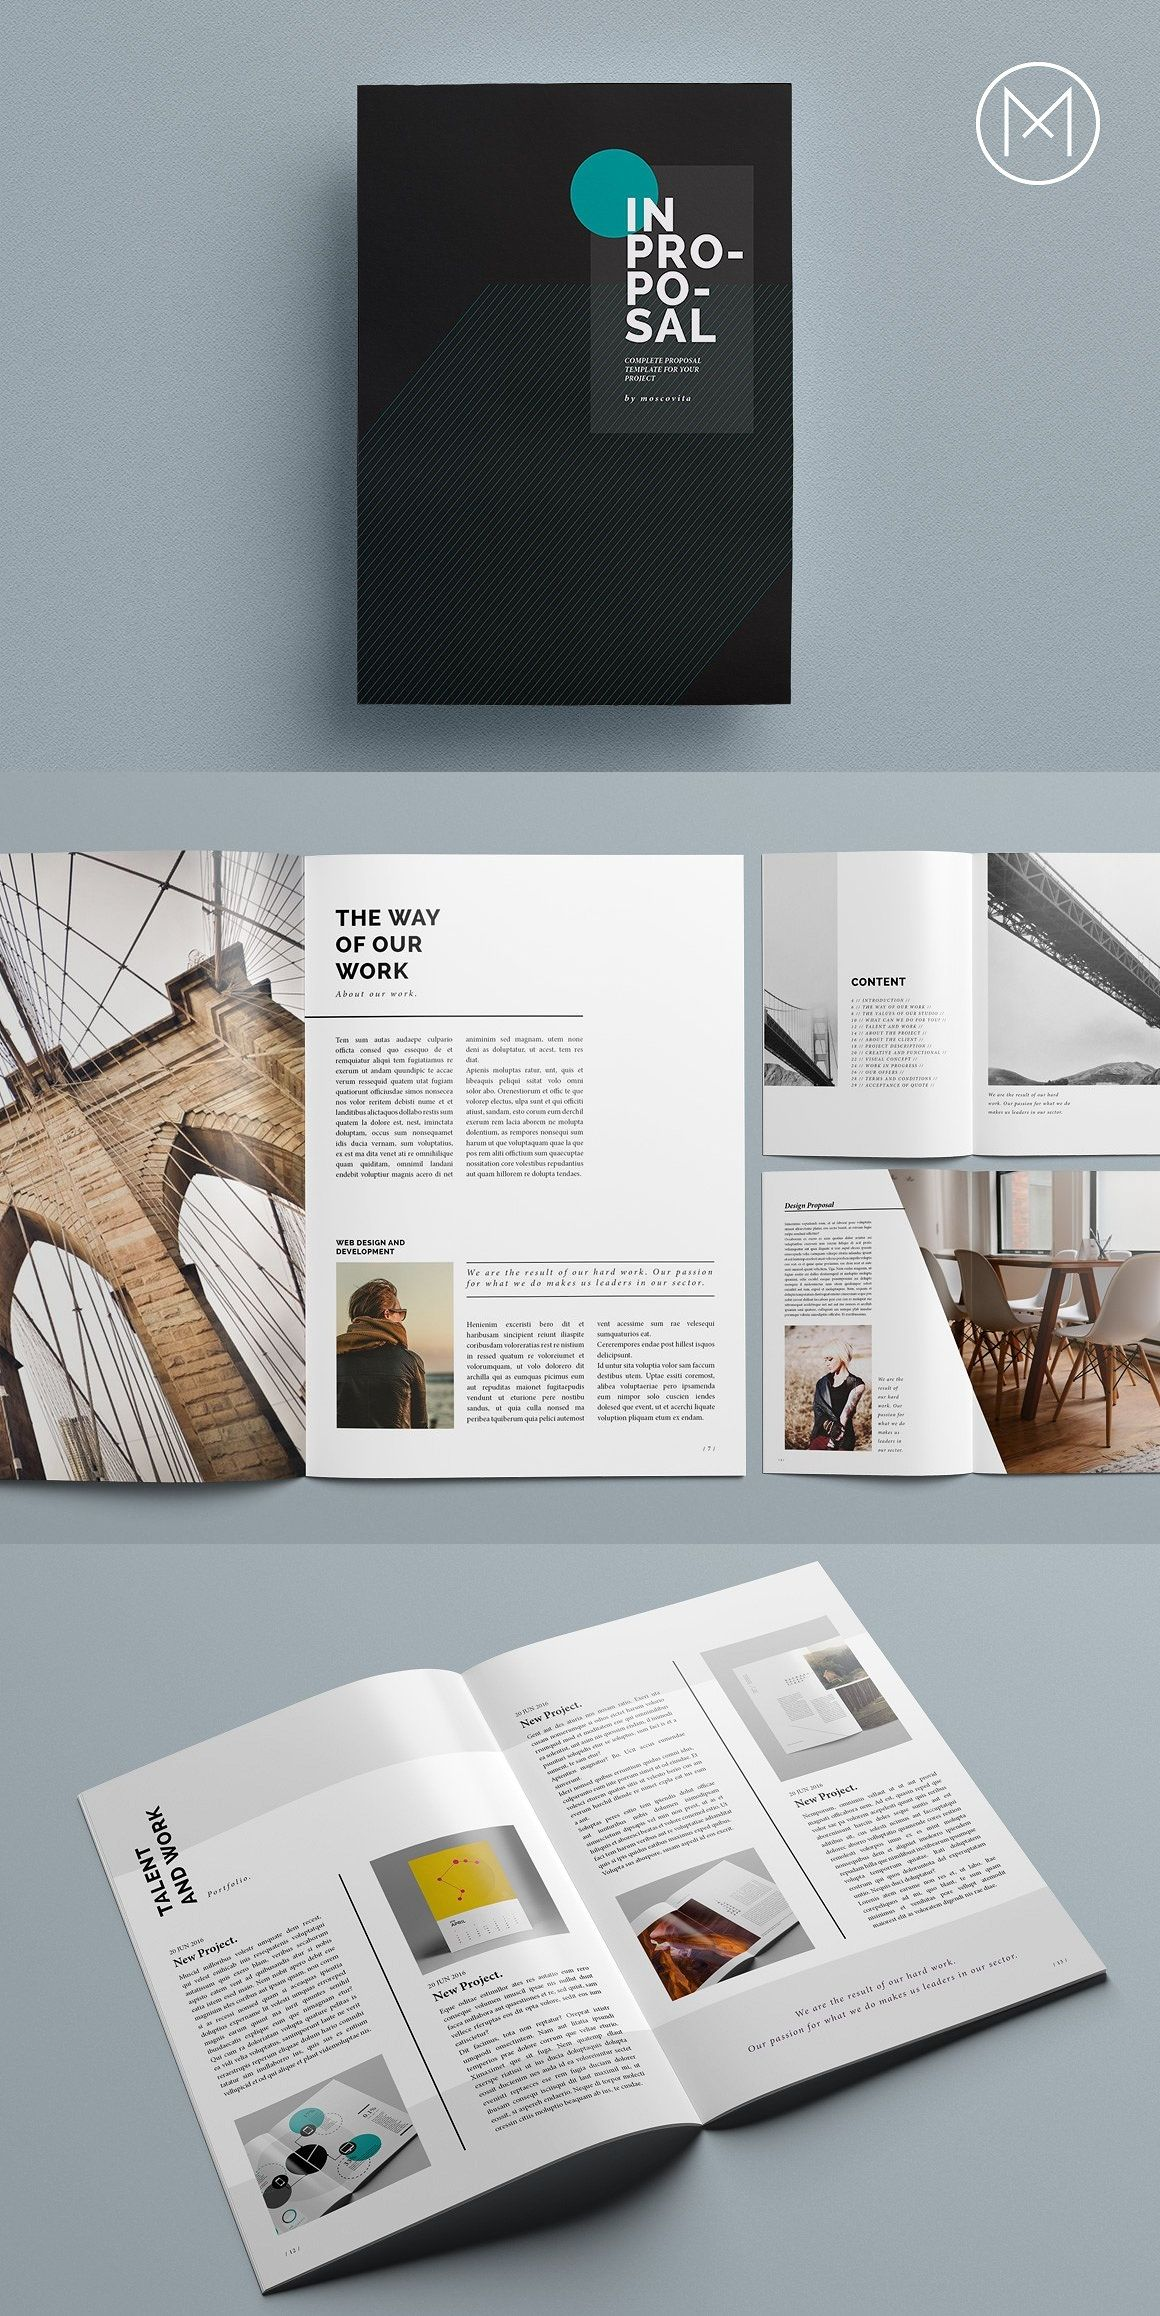 25 Proposal Brochure Templates For Adobe Indesign Proposal Design Book Design Brochure Design